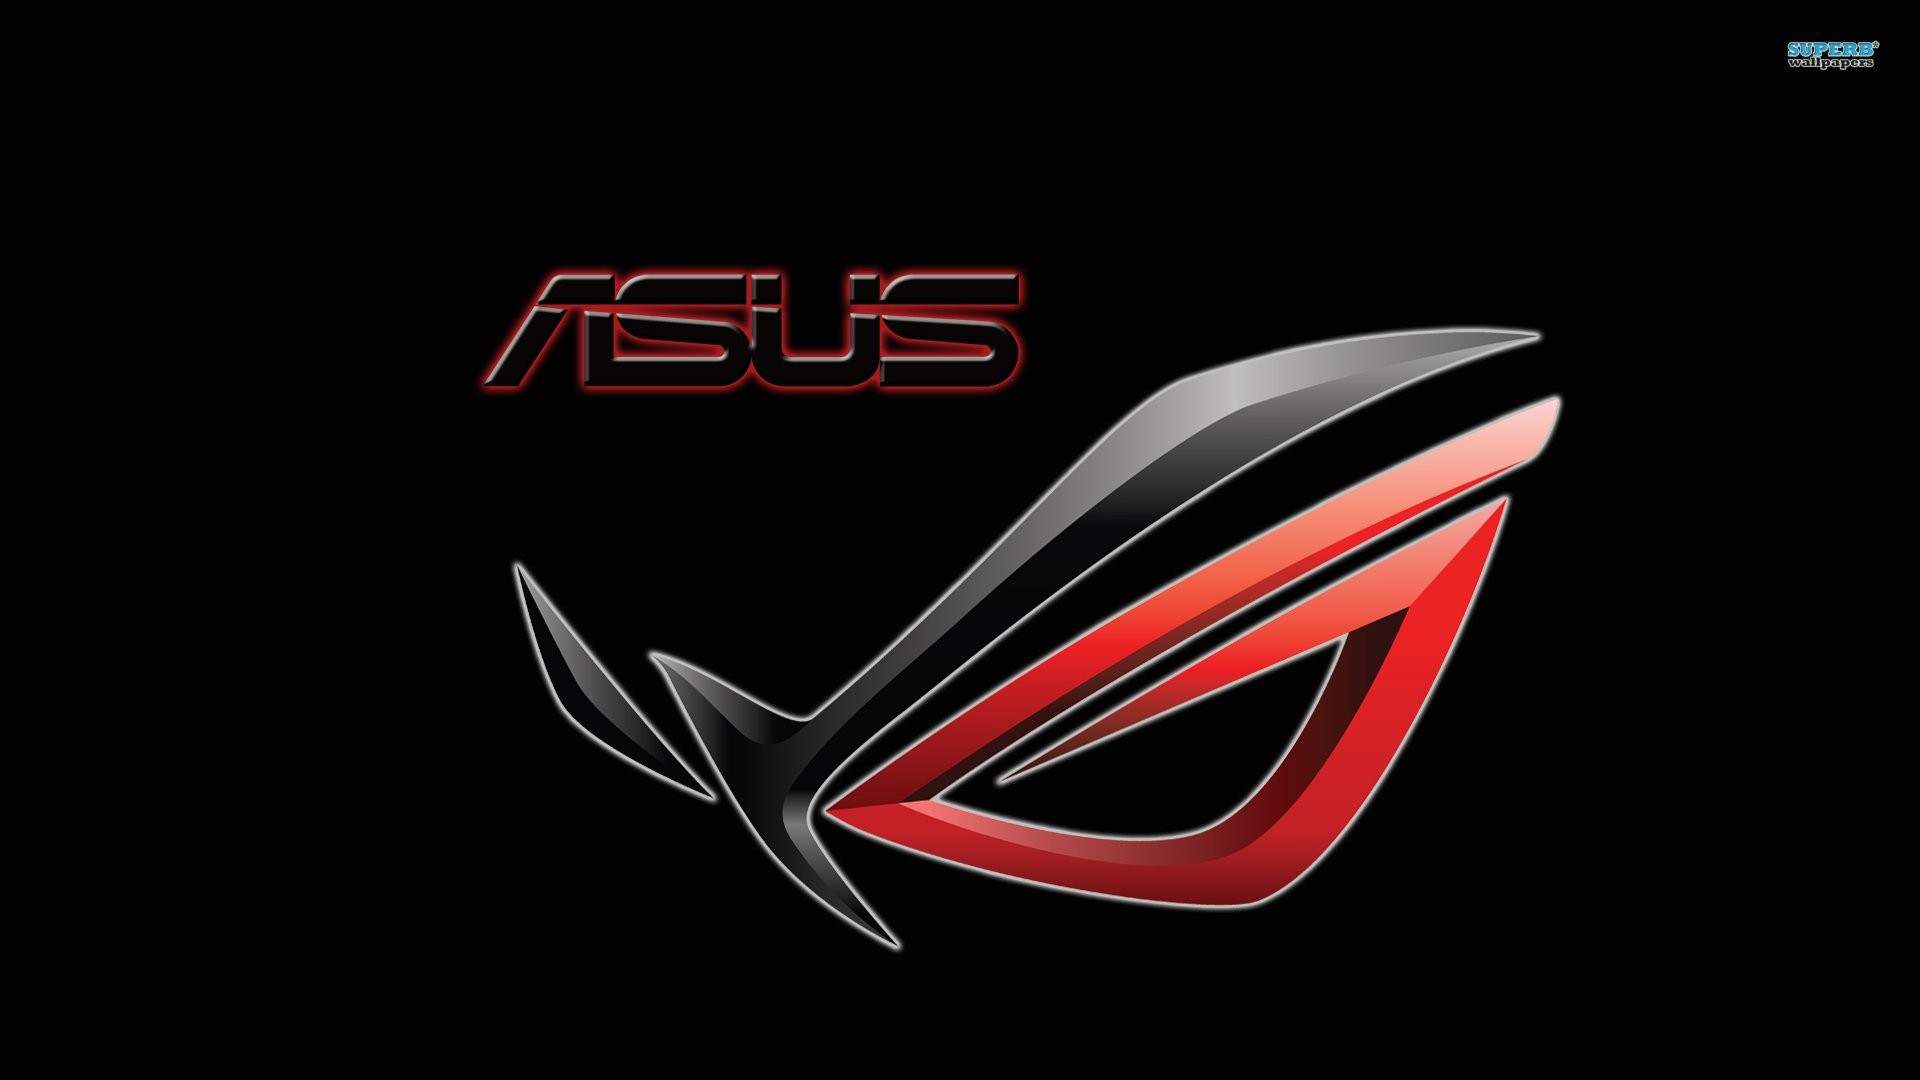 Brand Geek by ASUS wallpapers and images – wallpapers, pictures .